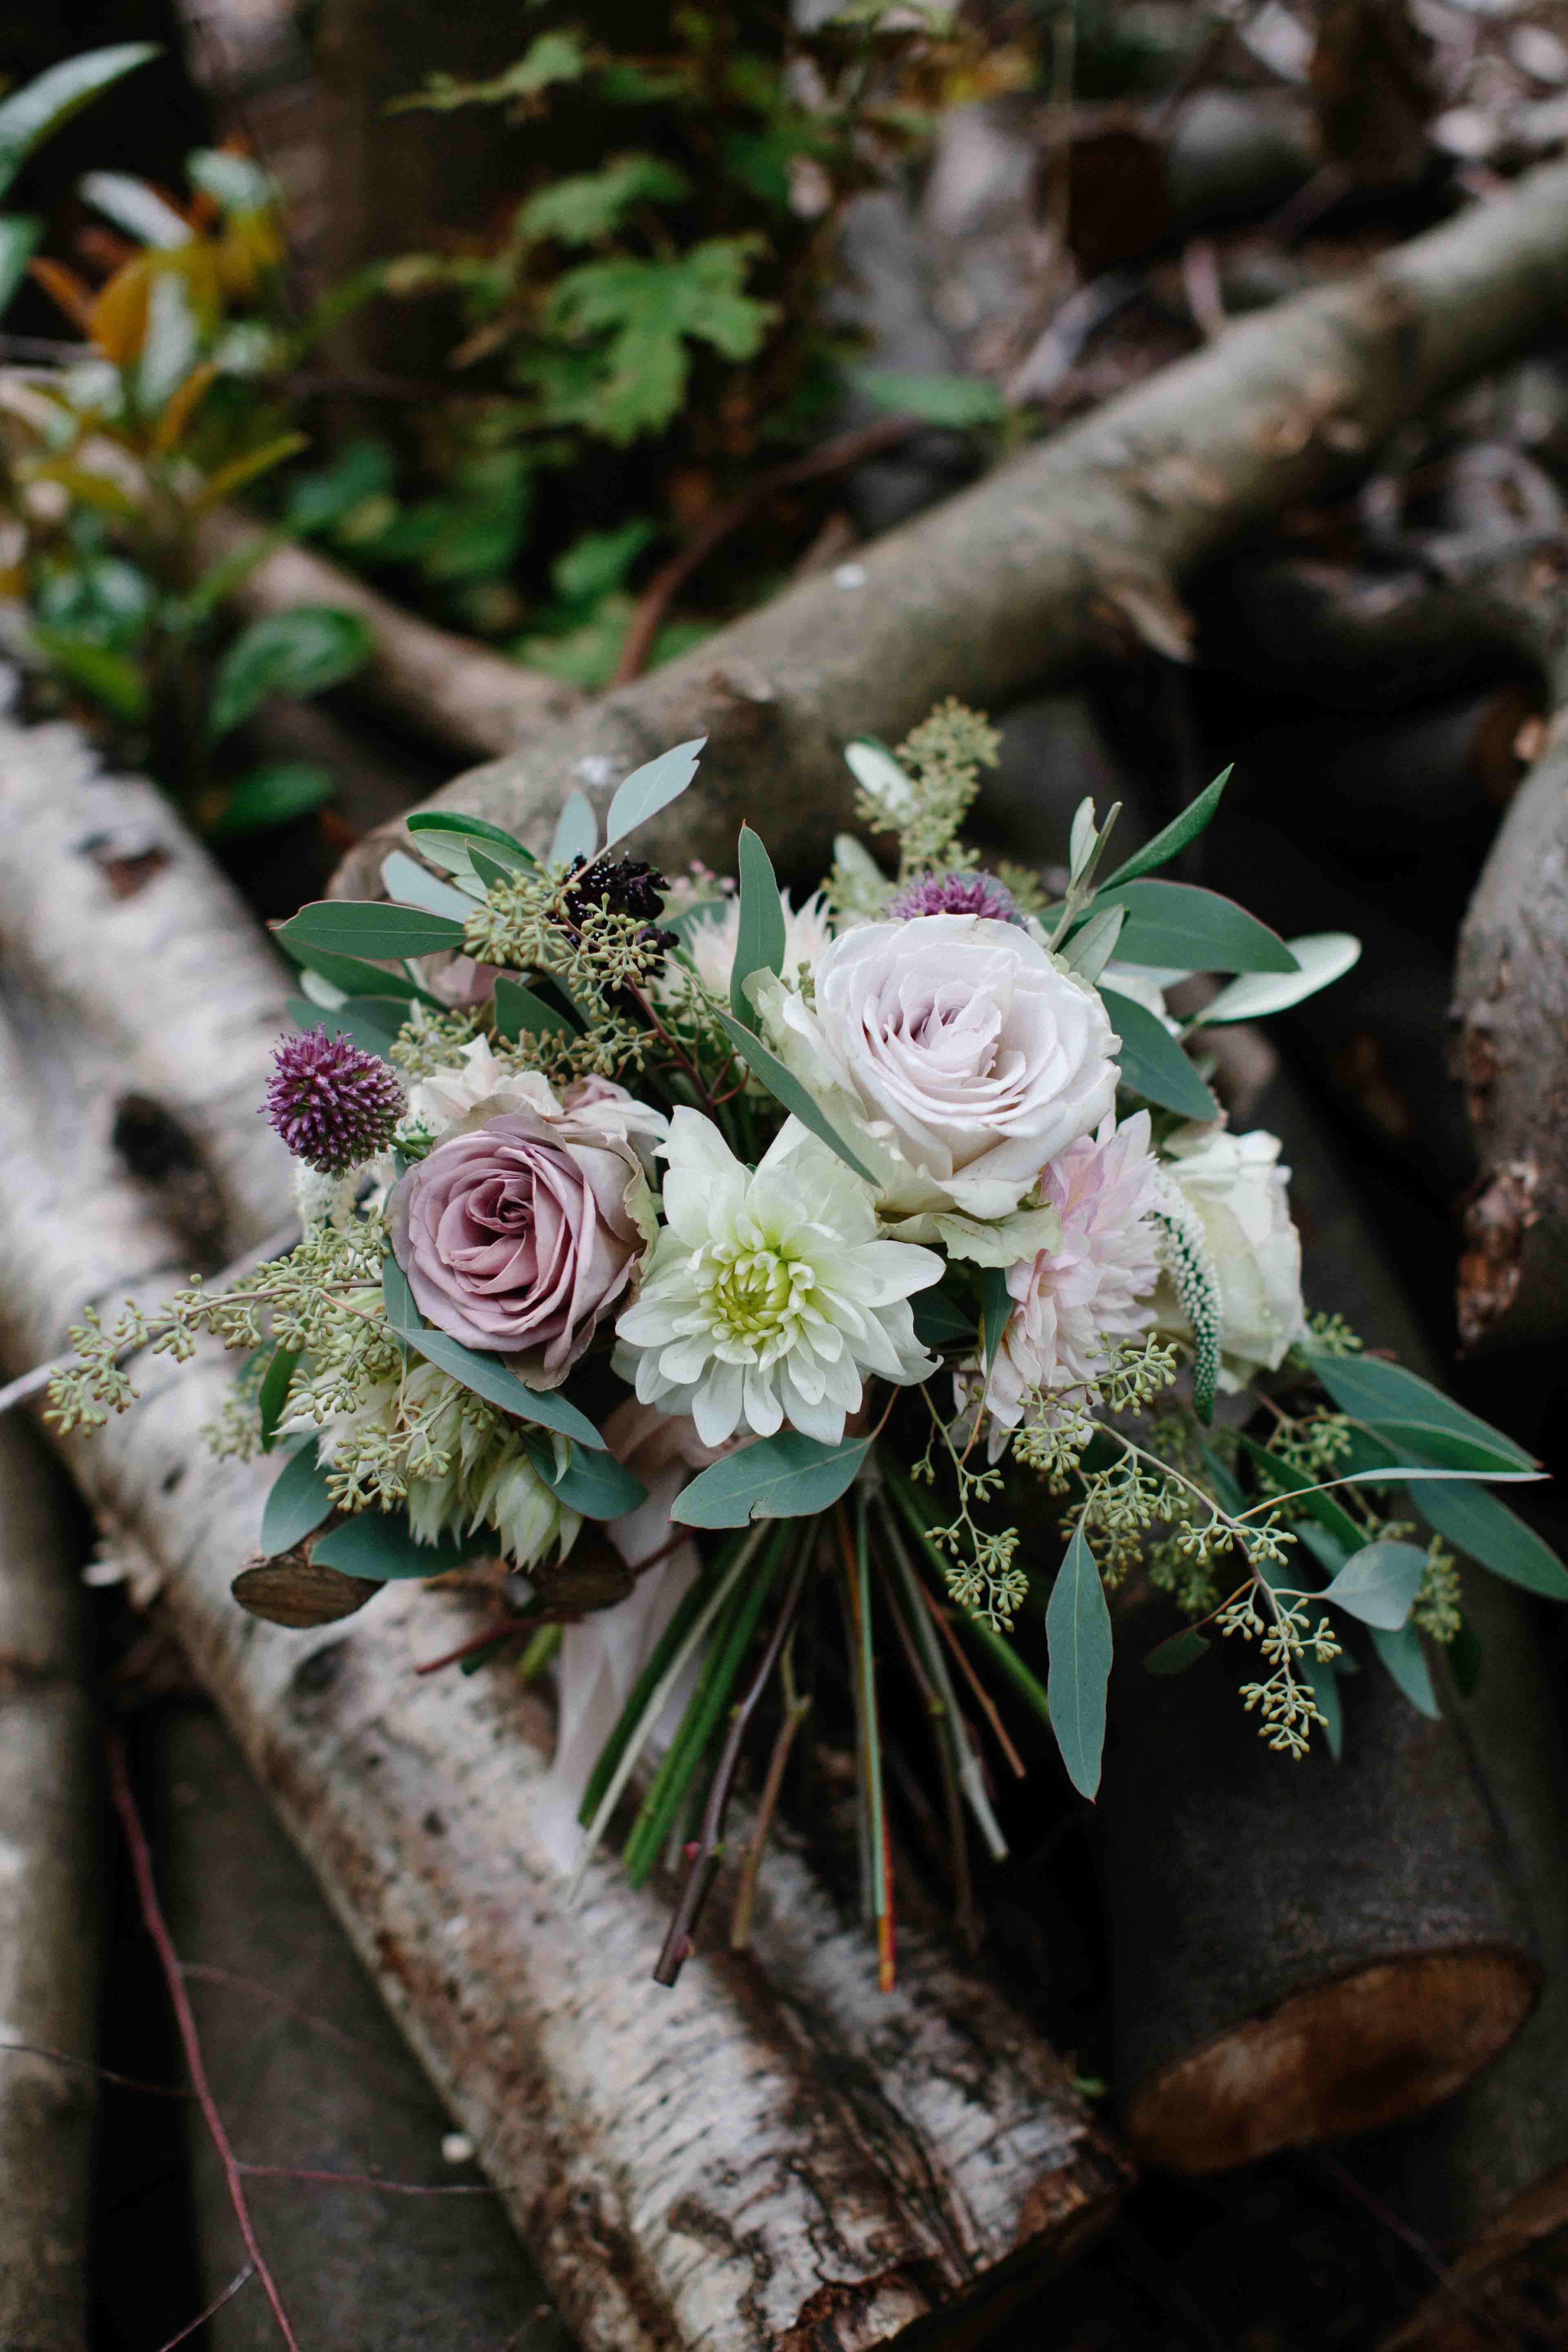 Bouquet on a pile of logs.